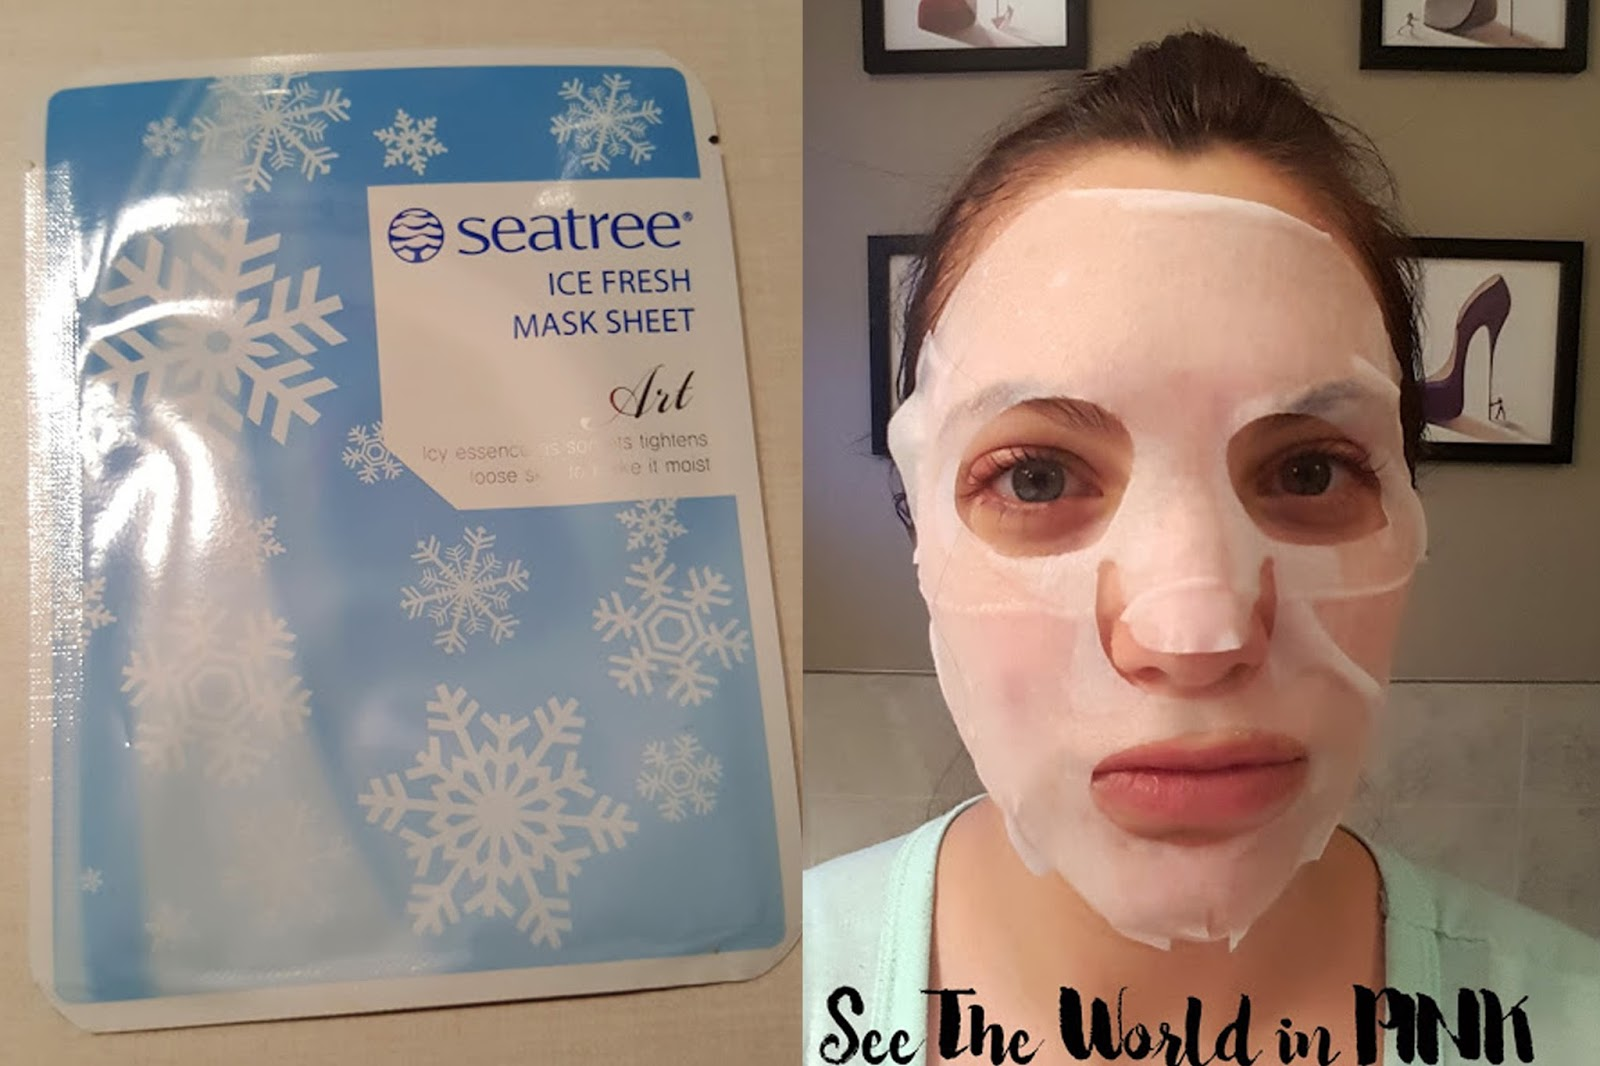 seatree ice fresh mask sheet